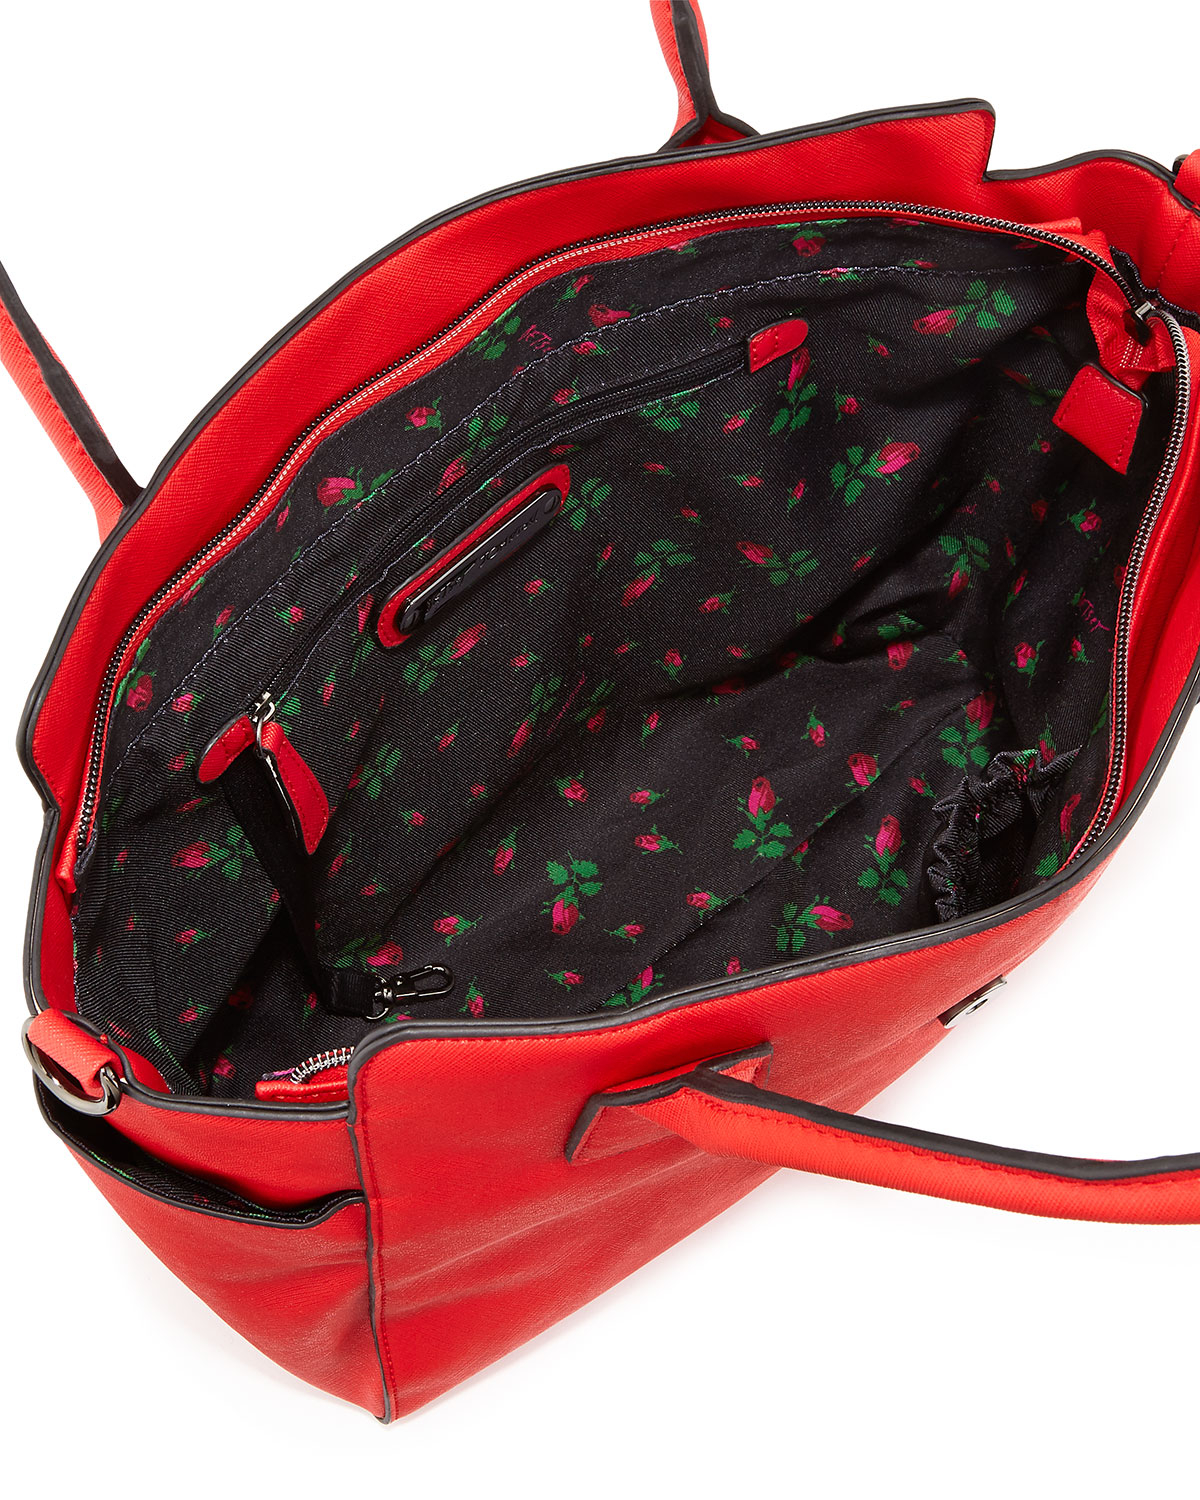 Betsey Johnson Saffiano Bow Tote Bag In Red Lyst